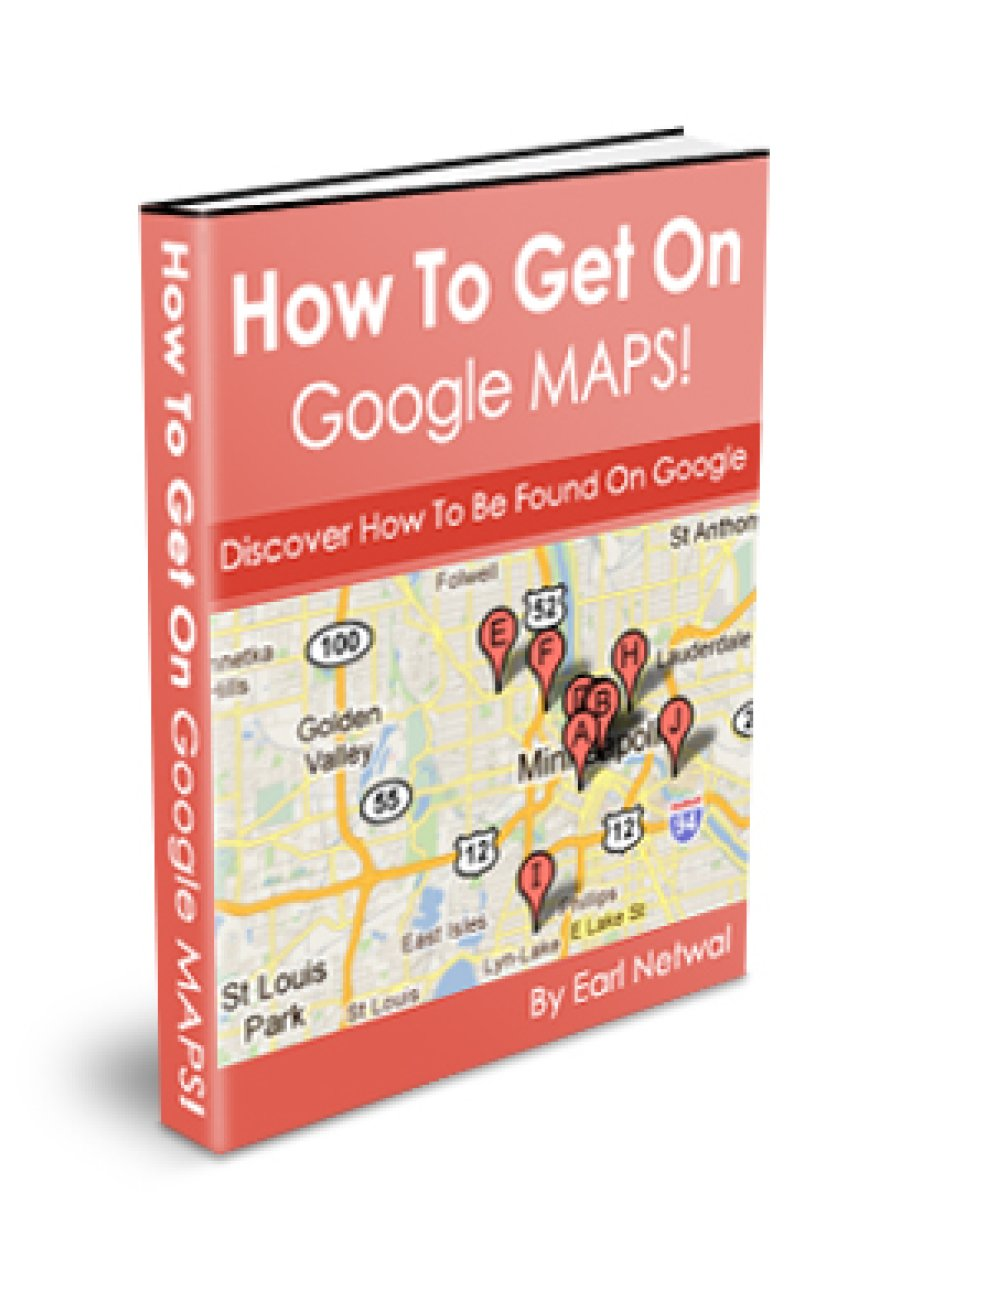 How To Get On Google Maps!